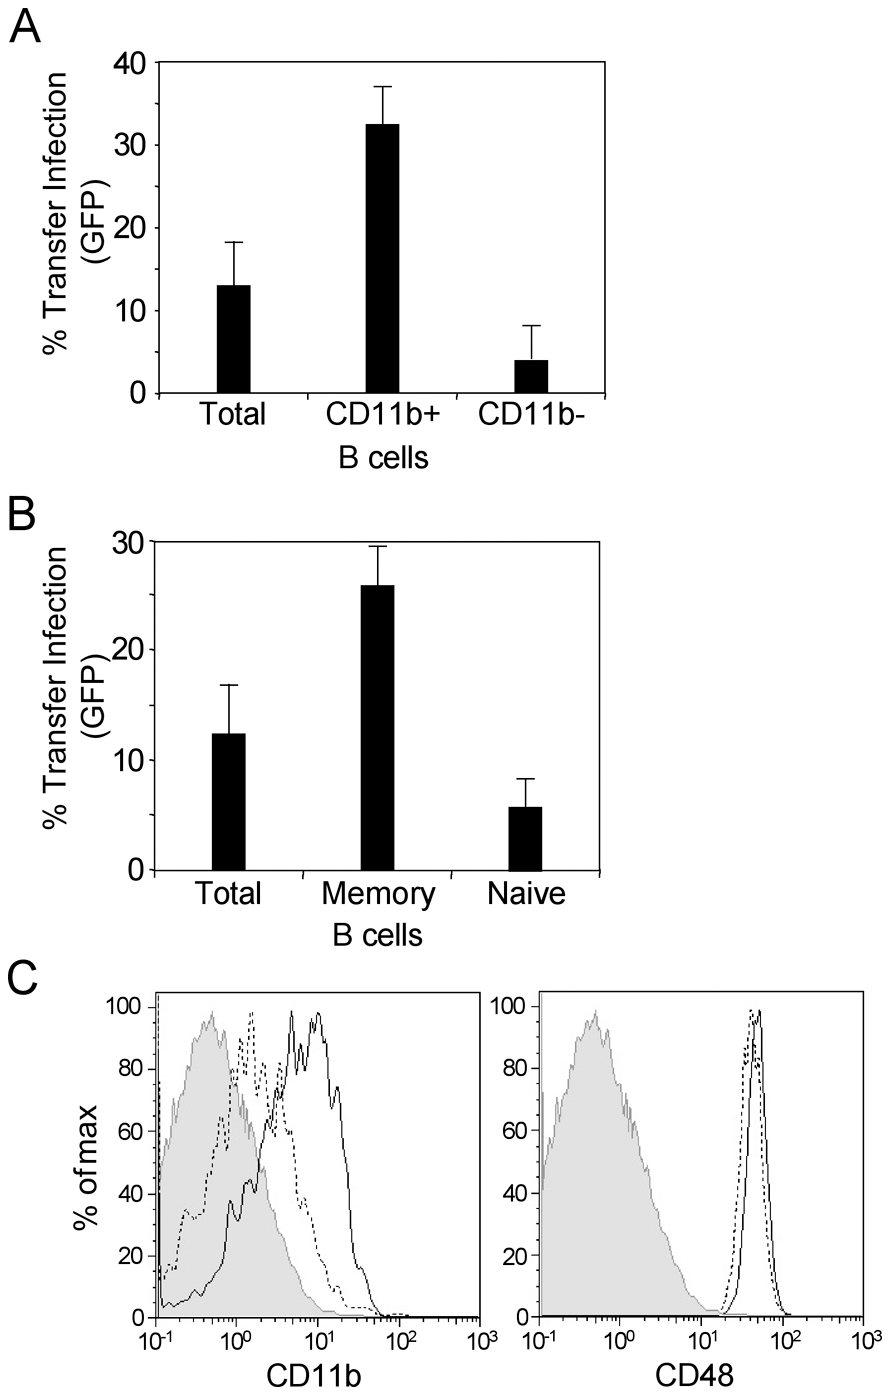 Transfer infection via the basolateral surface is mediated via memory B cells.